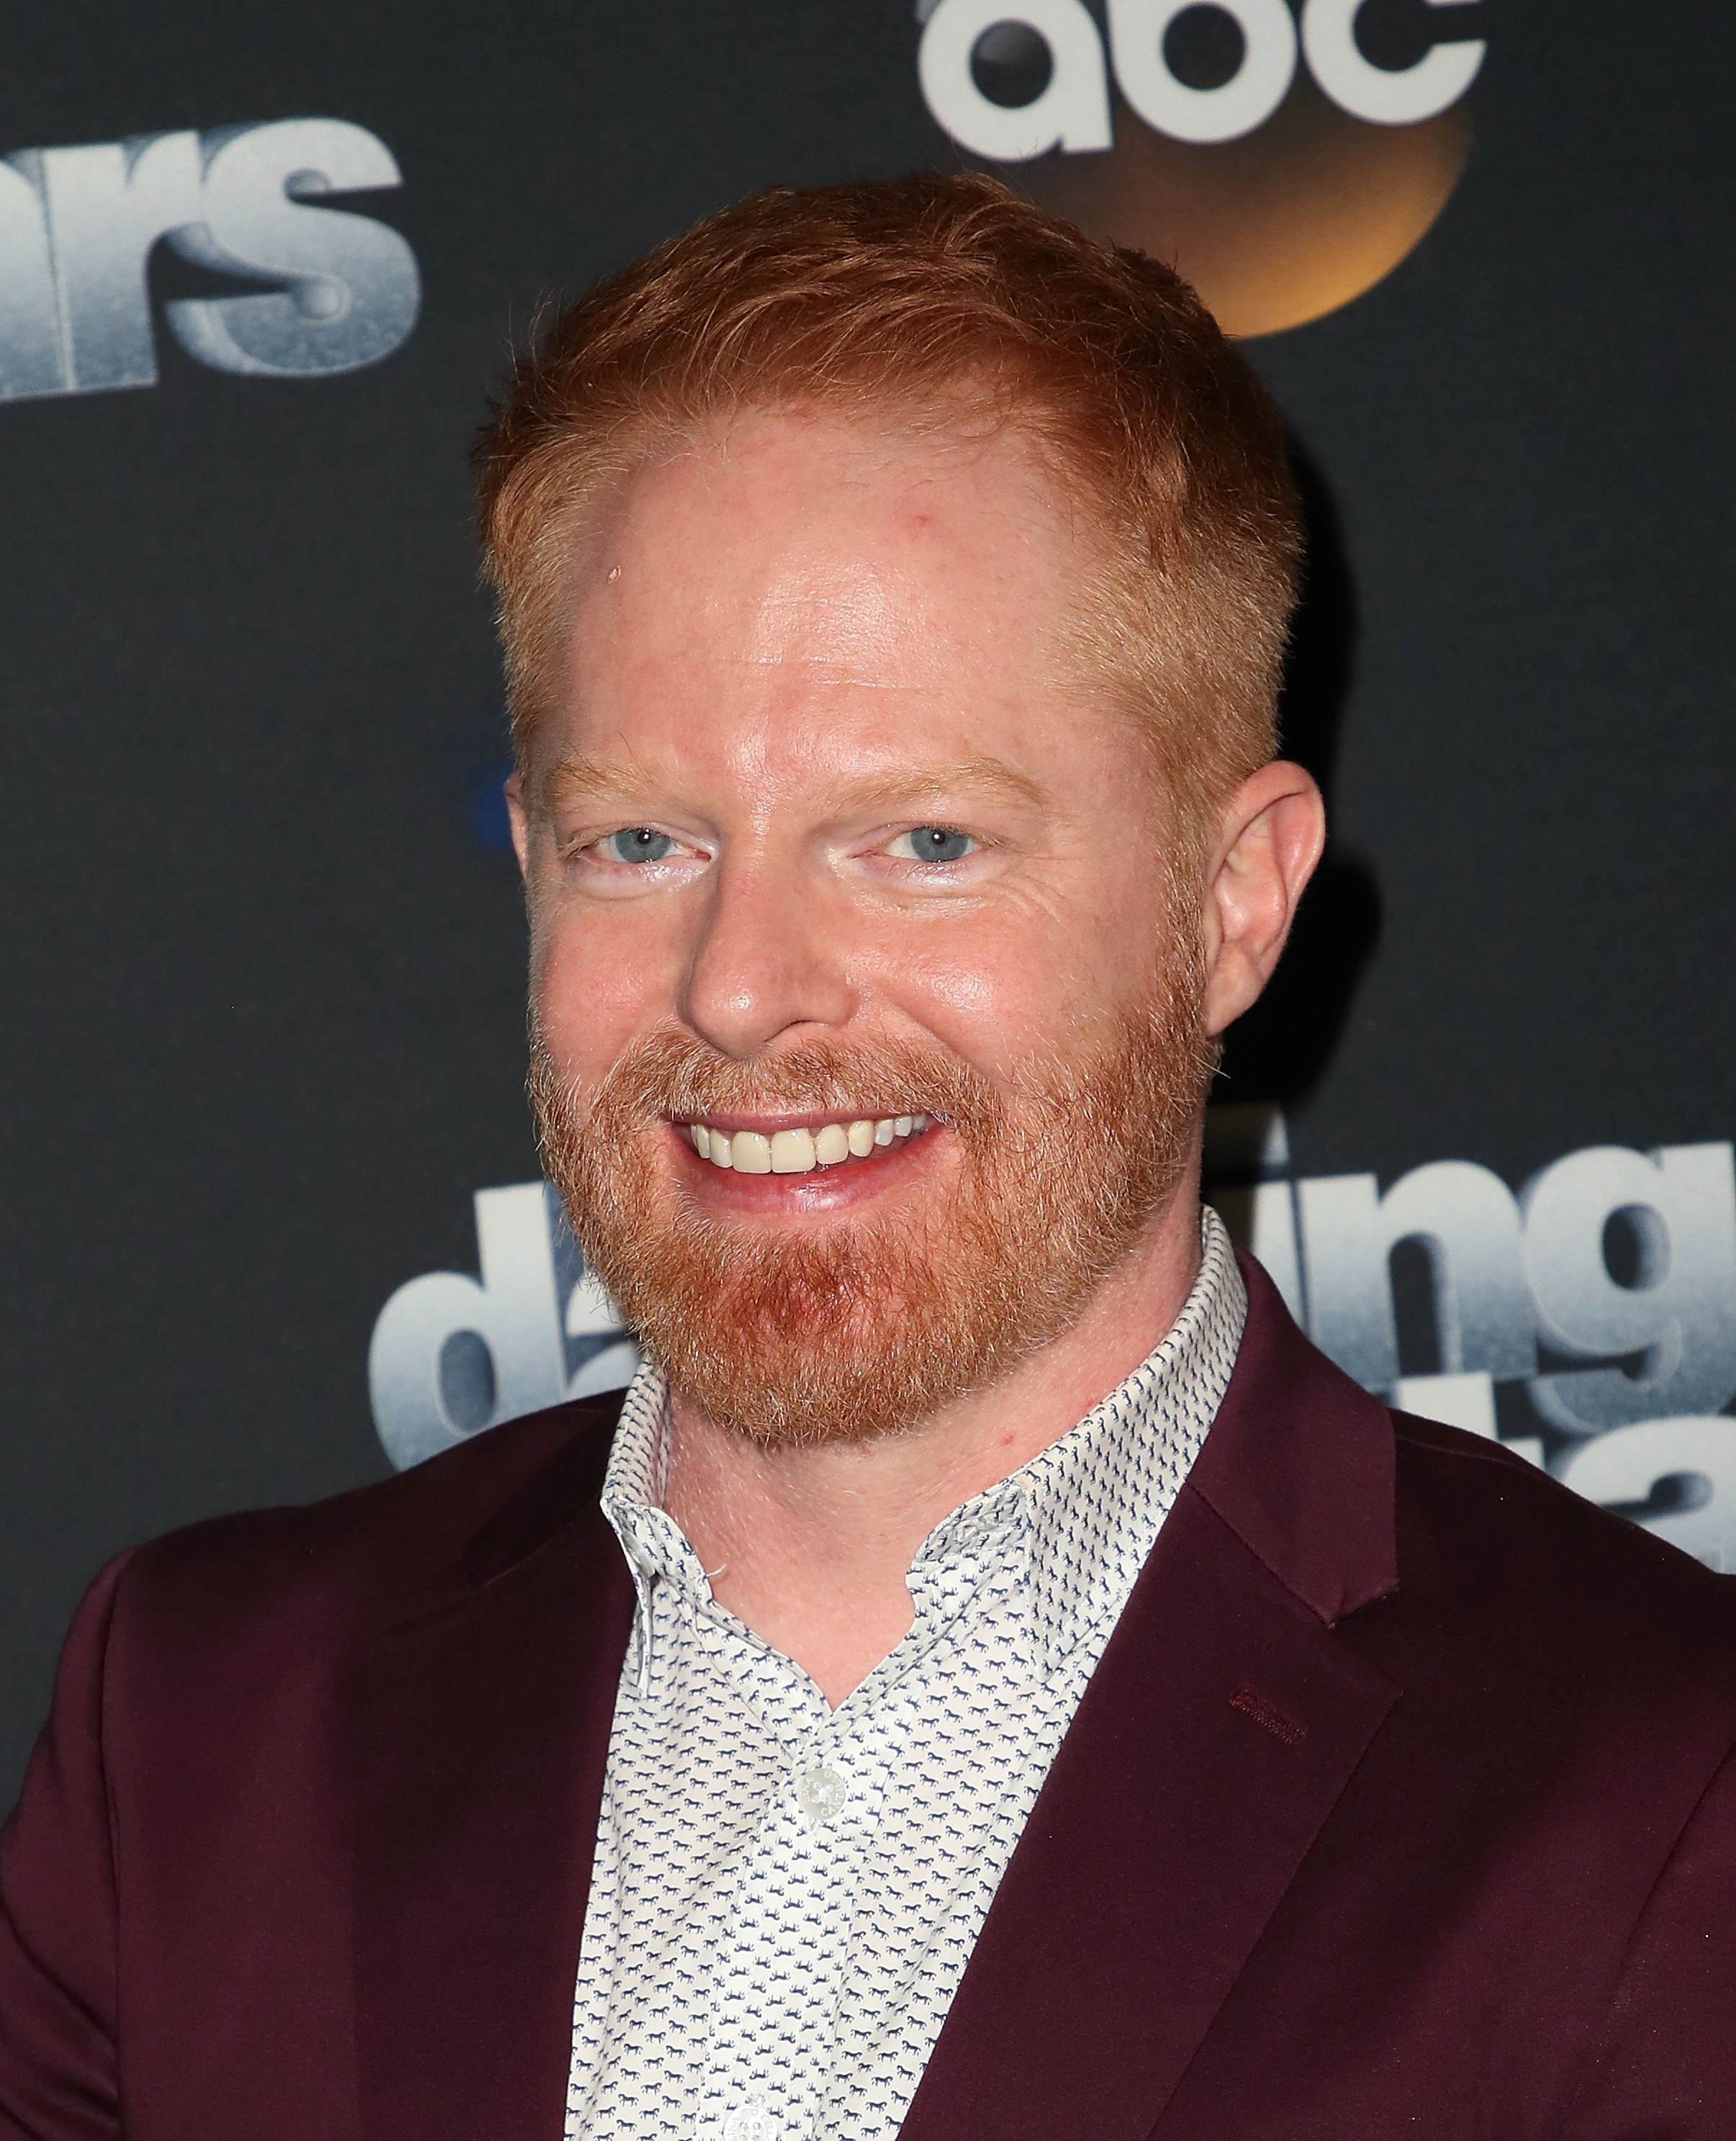 """Jesse Tyler Ferguson at """"Dancing with the Stars"""" Season 27 on October 1, 2018, in Los Angeles, California. 